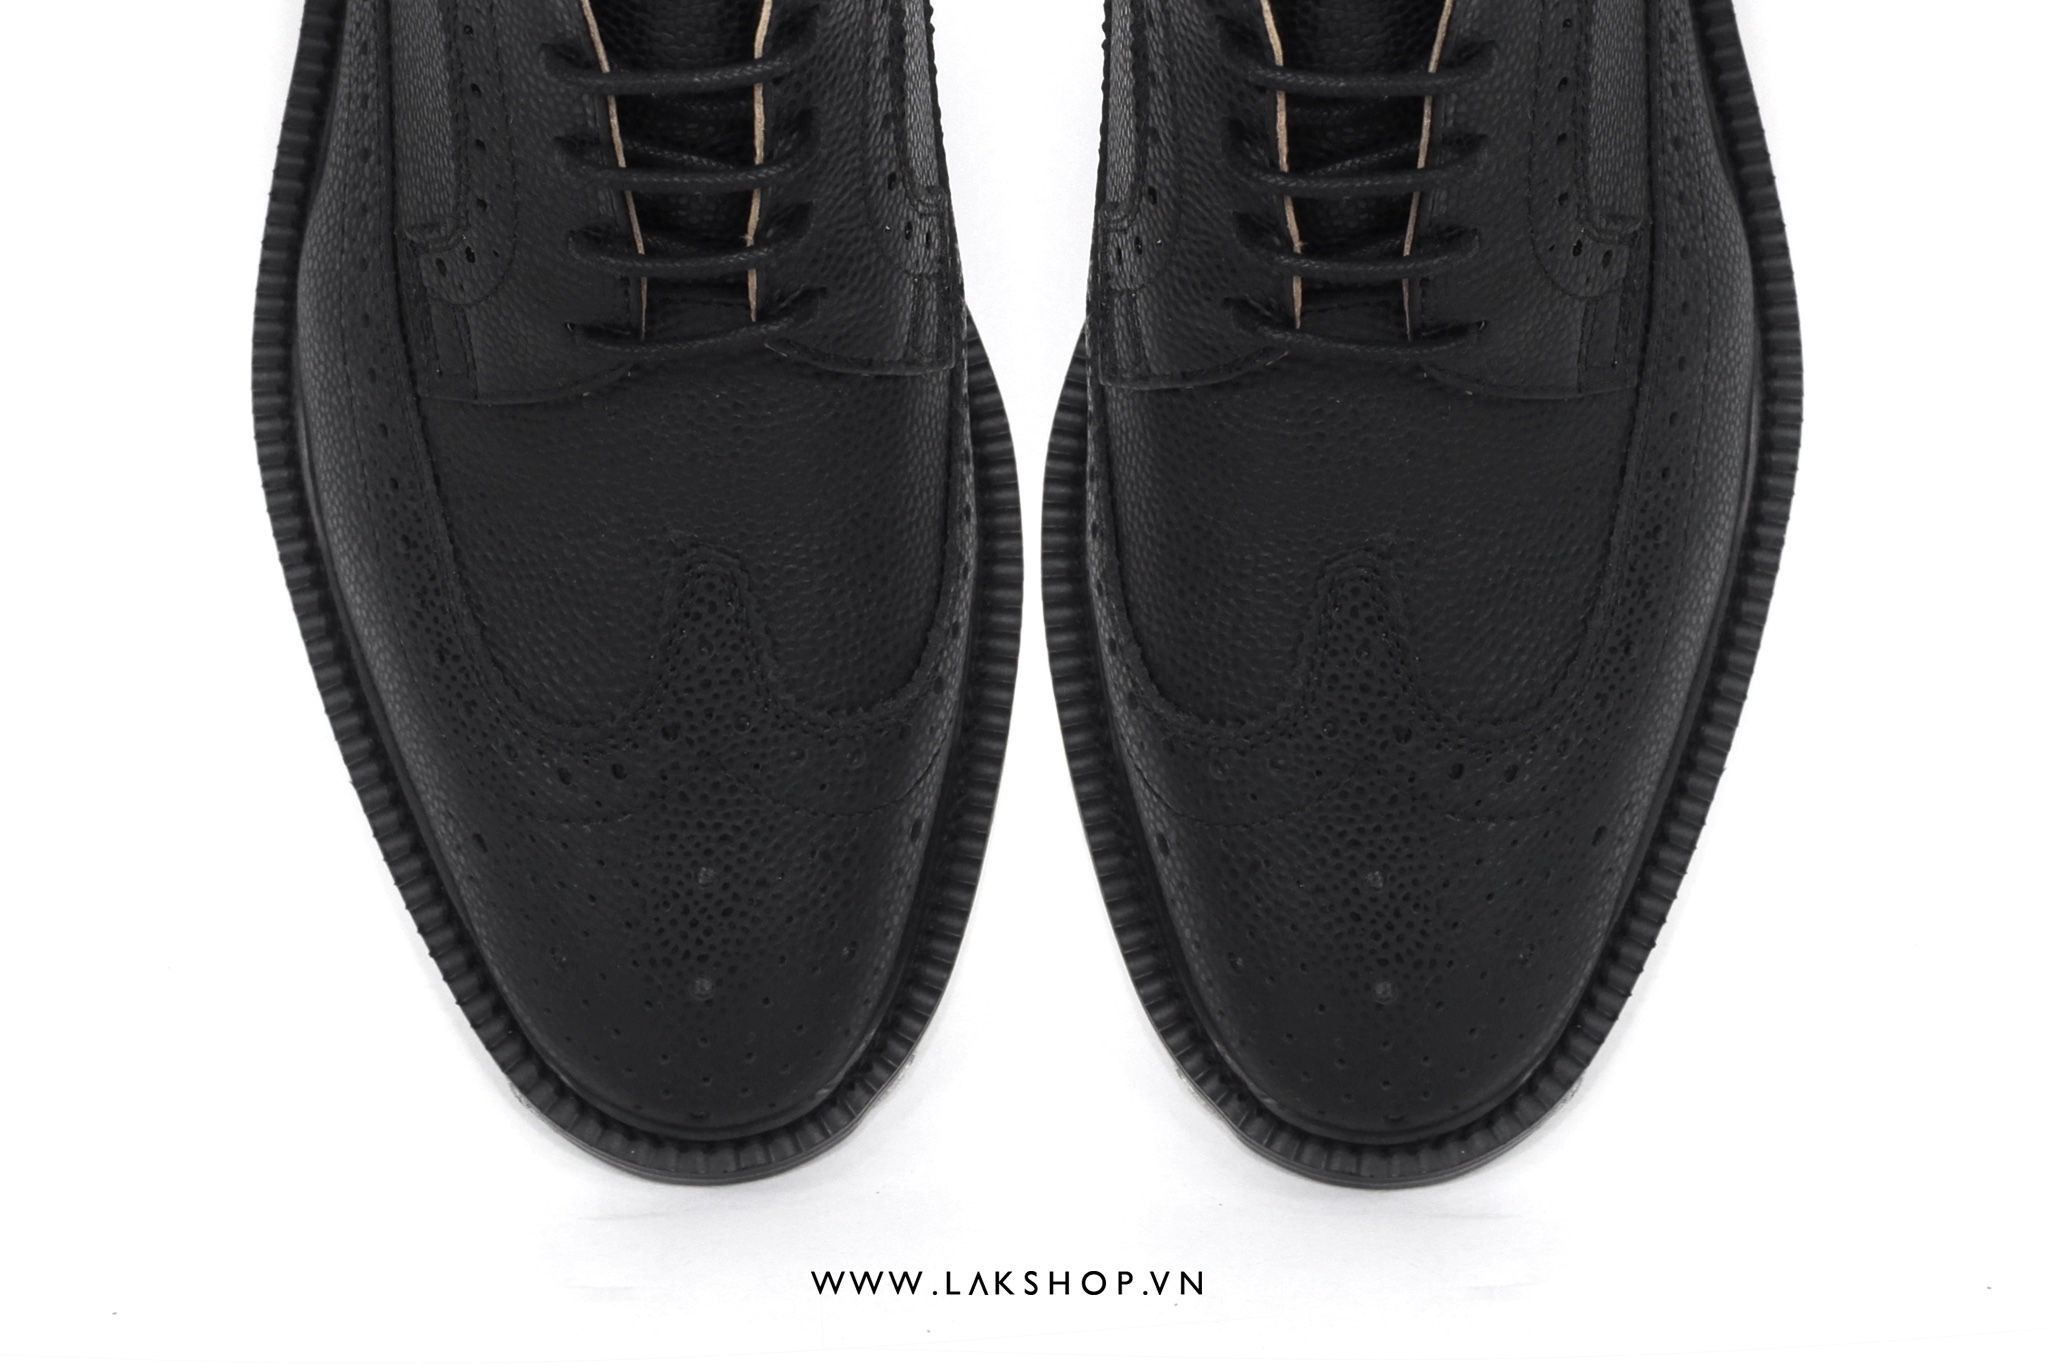 Thom Browne Lightweight Sole Longwing Brogue